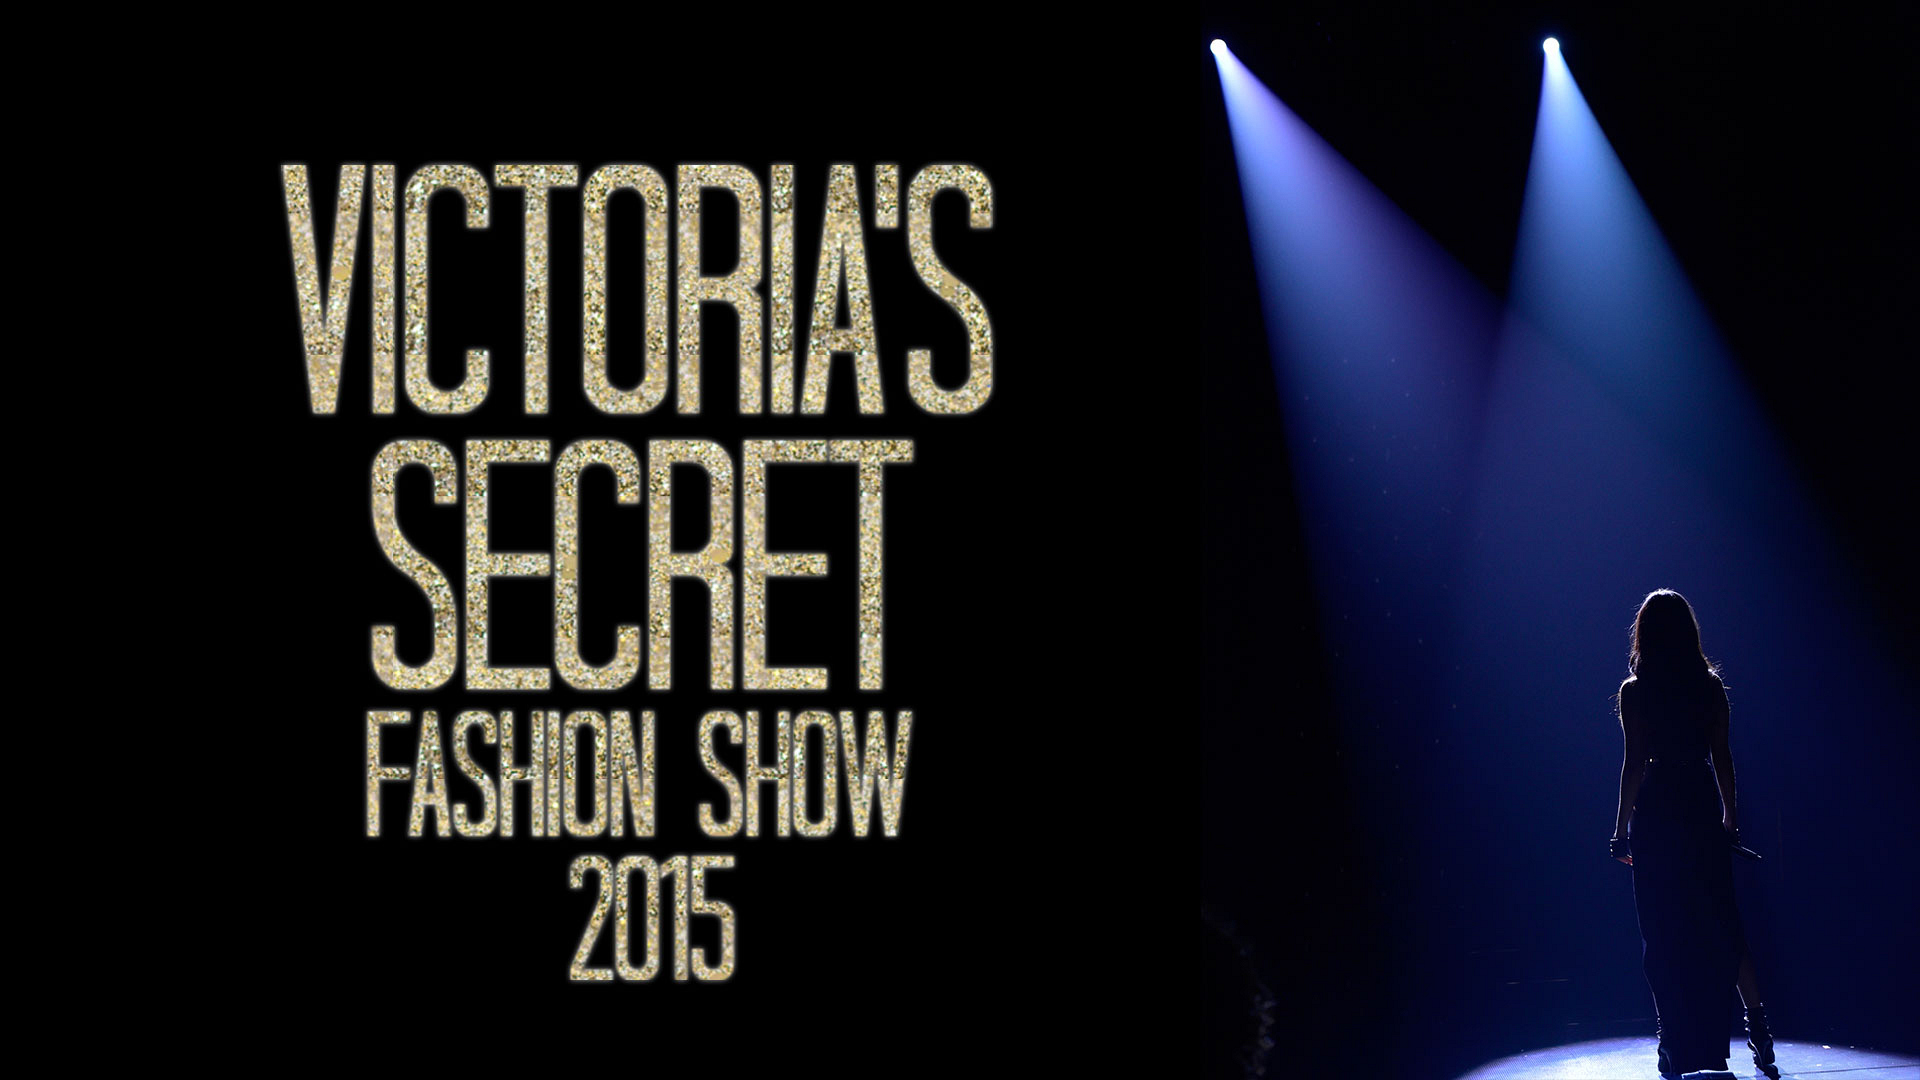 Are you ready for the 20th annual Victoria's Secret Fashion Show?